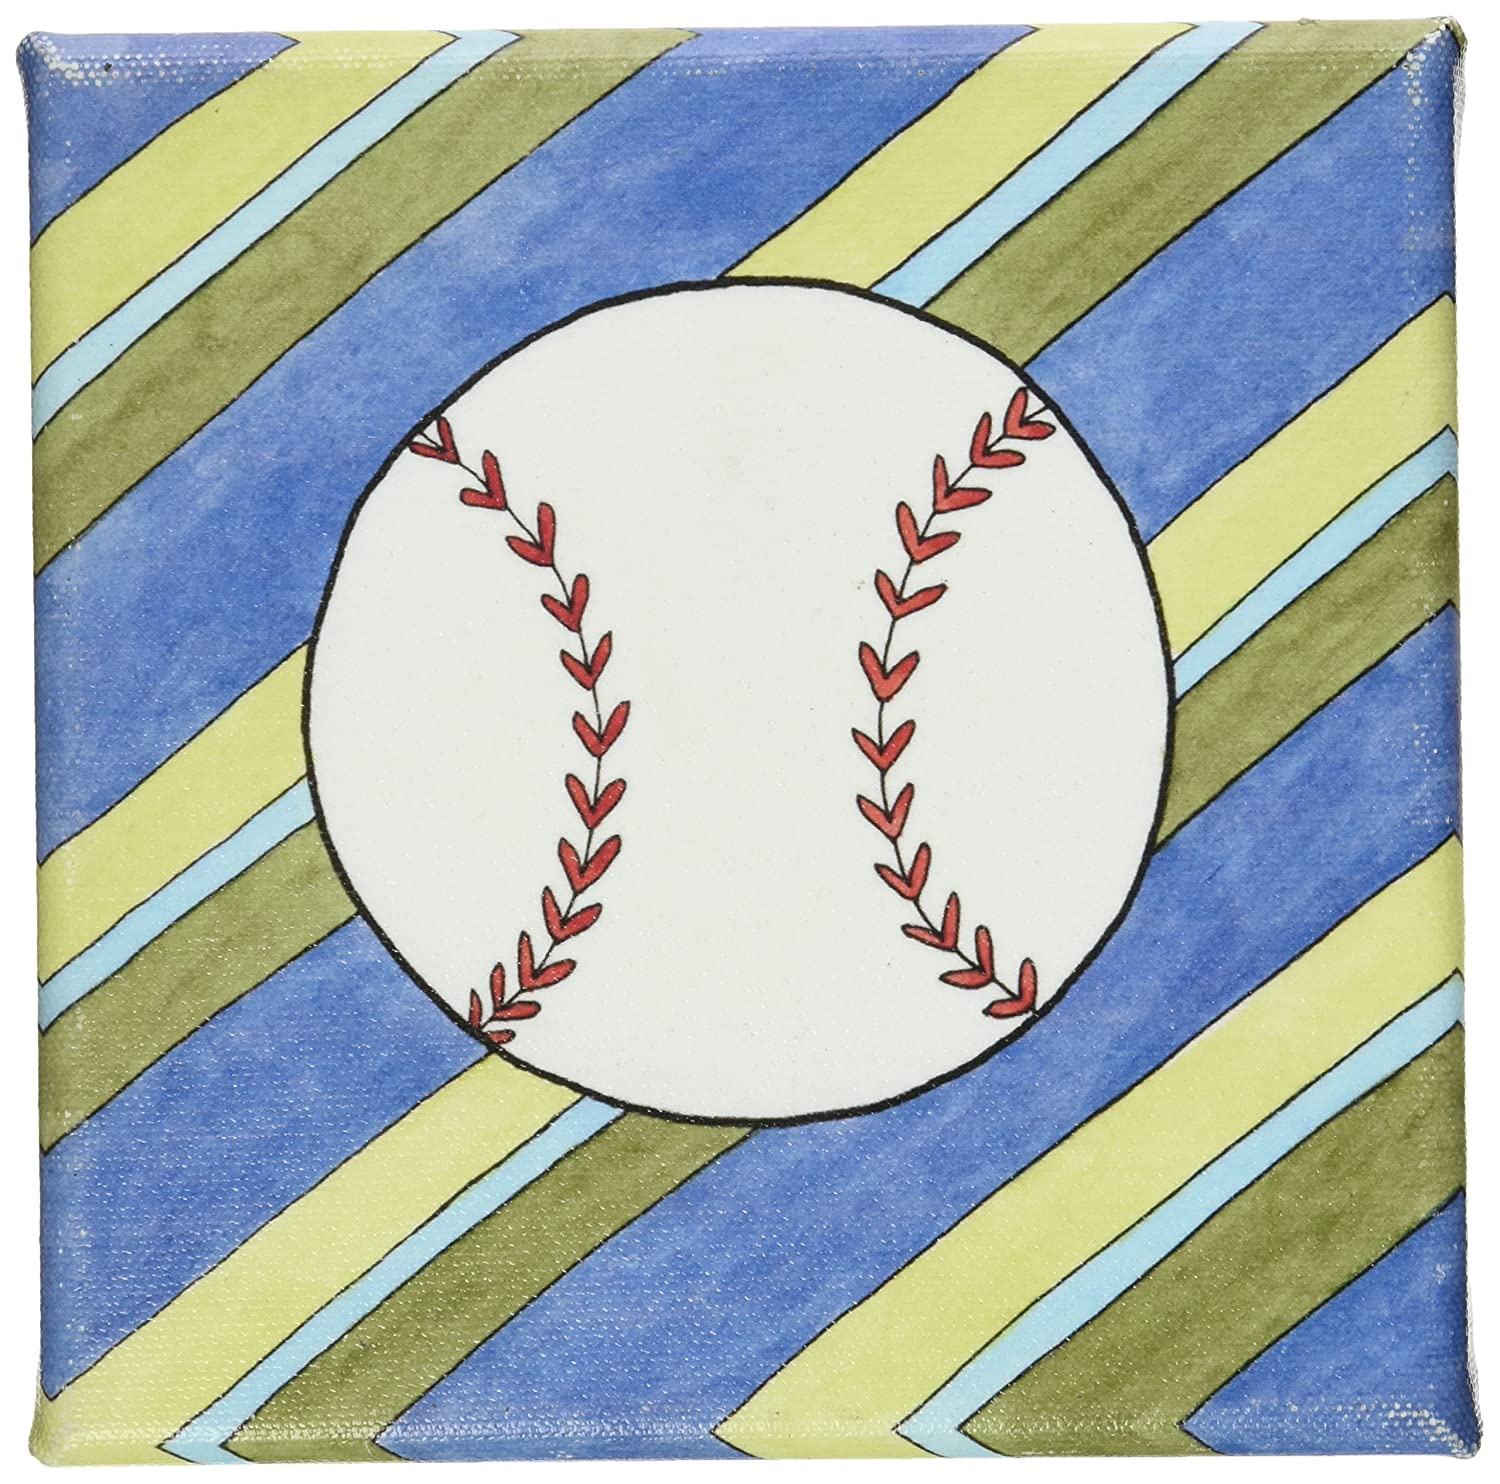 Green Frog Art 6X6 Canvas Gallery Wrapped Art, Hangin' Out Baseball by Green Frog Art   B004HILQTU